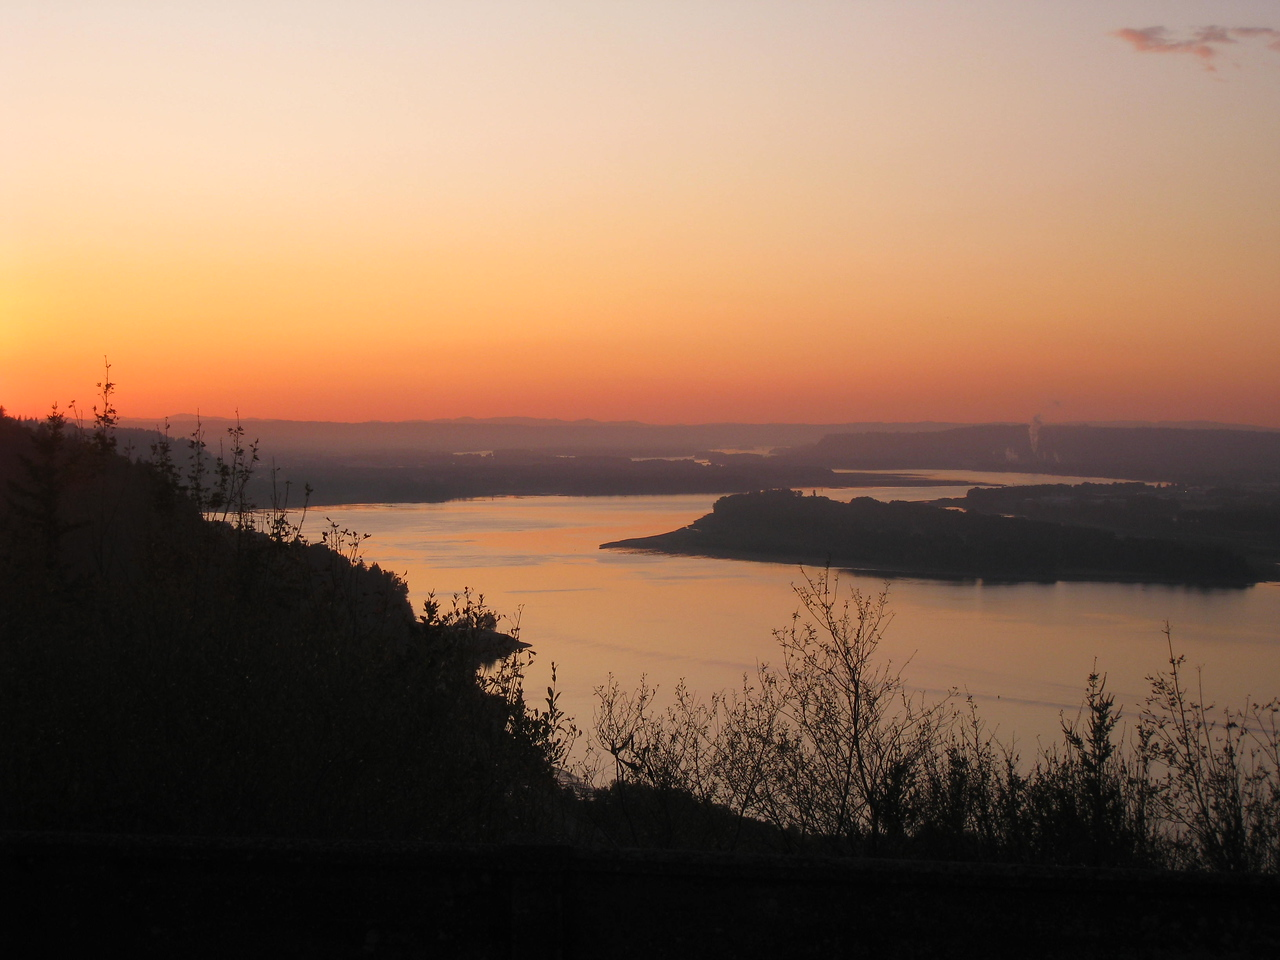 Sunday afternoon we happened to be passing Crown Point in the Gorge right at Sunset so we stopped & snapped a quick pic!